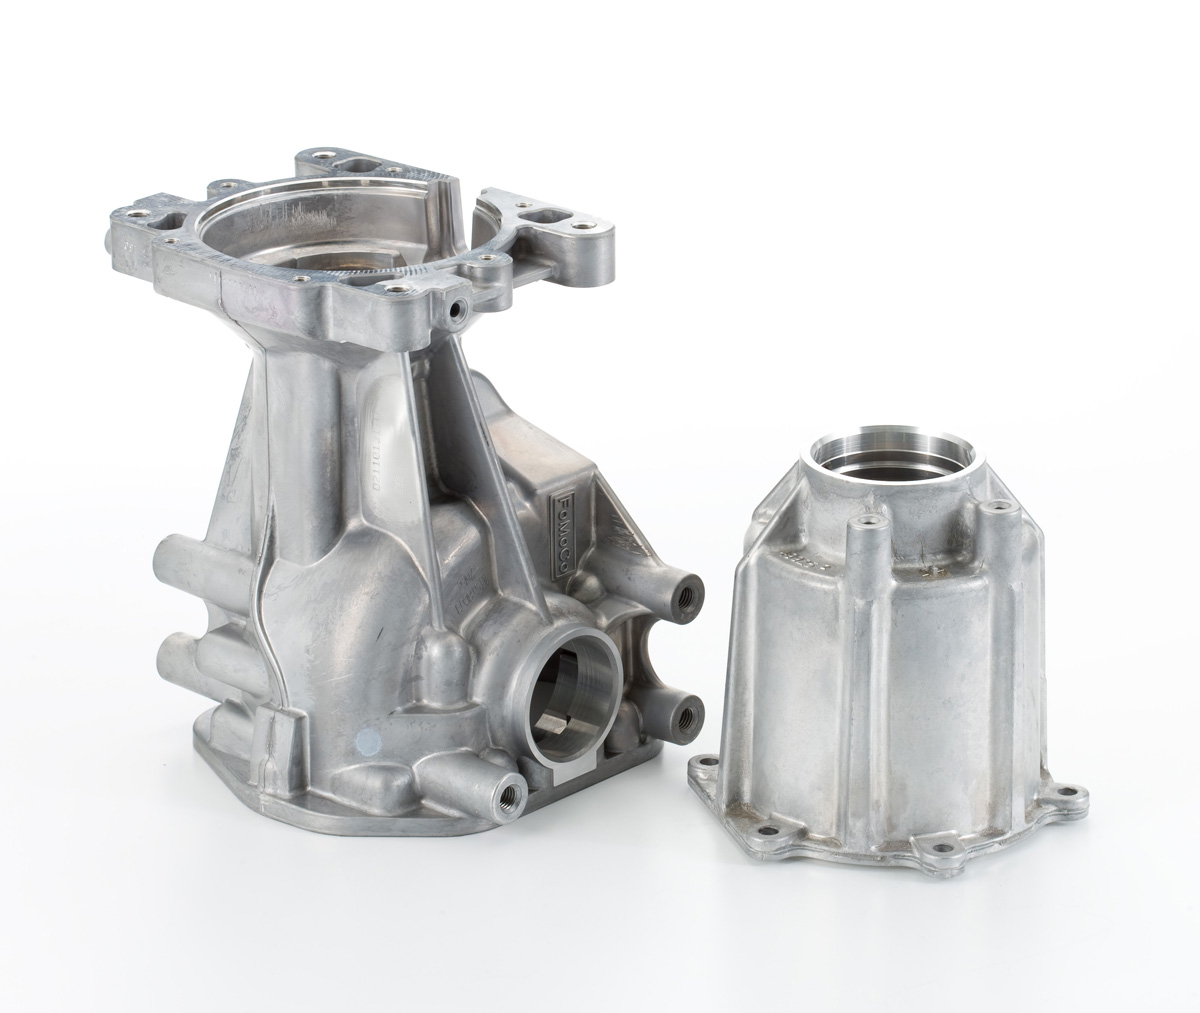 Twin Cylinder Crankcase and Head